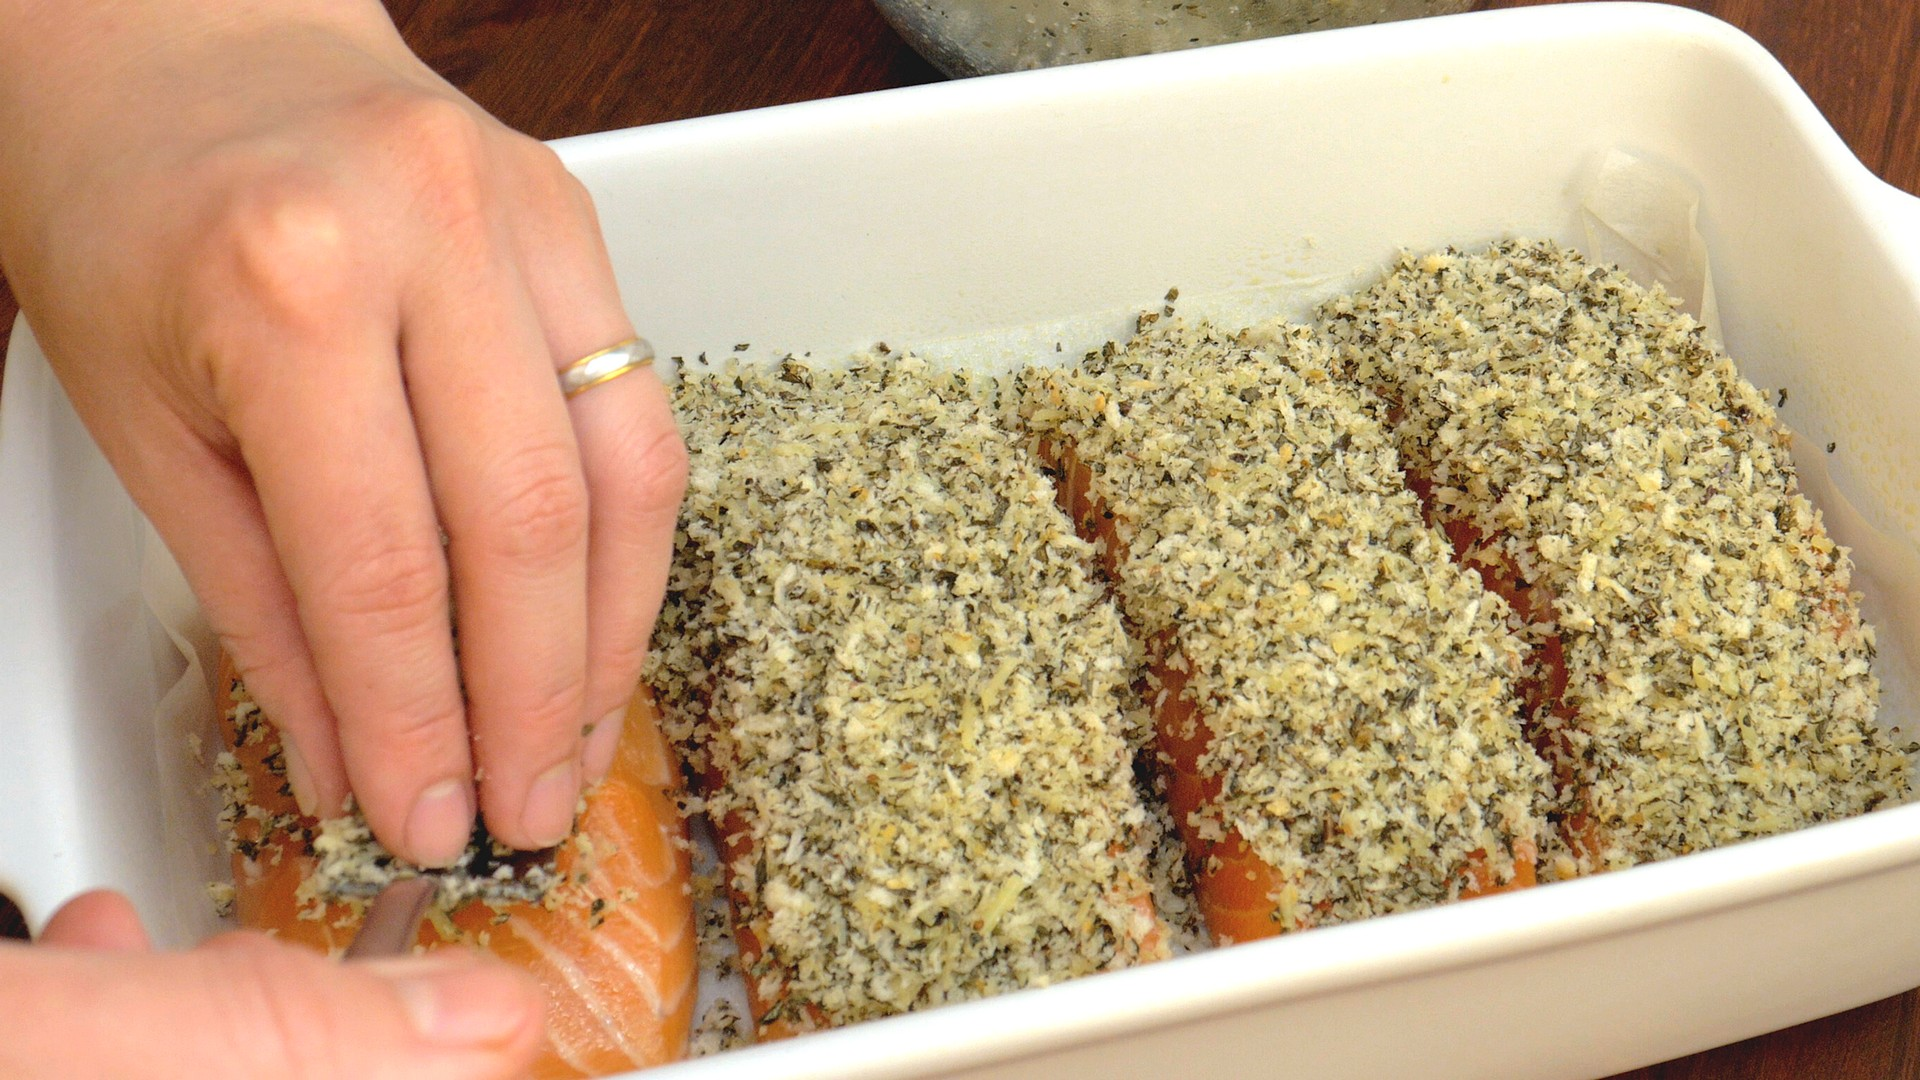 S1E3 Herbs Crusted Salmon Take 2